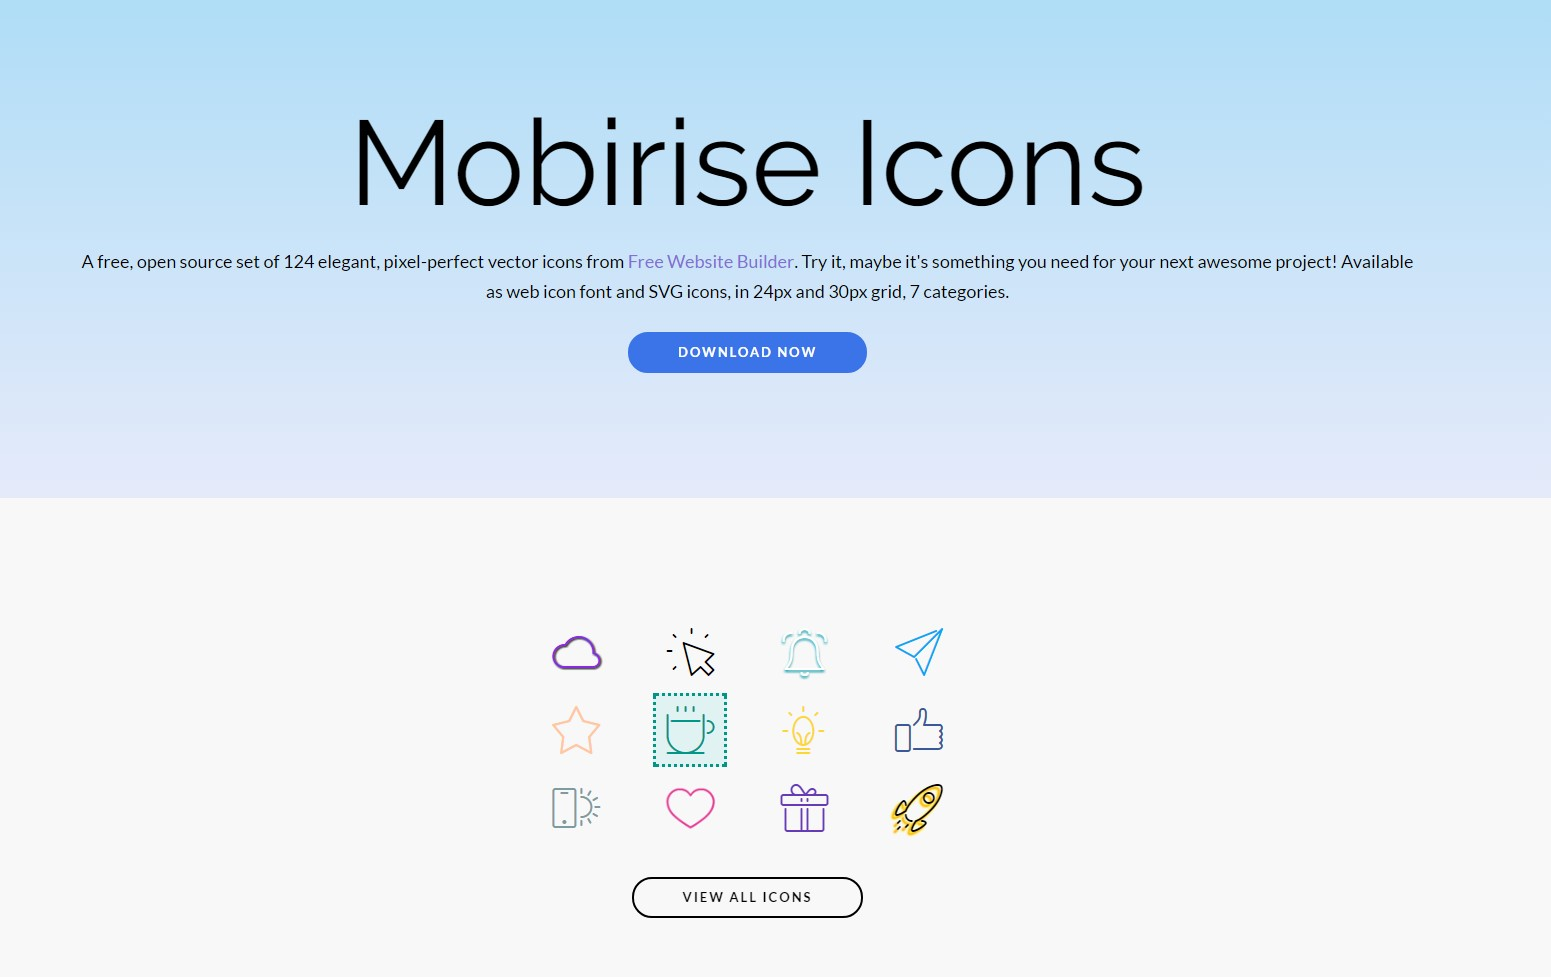 mobirise icons package